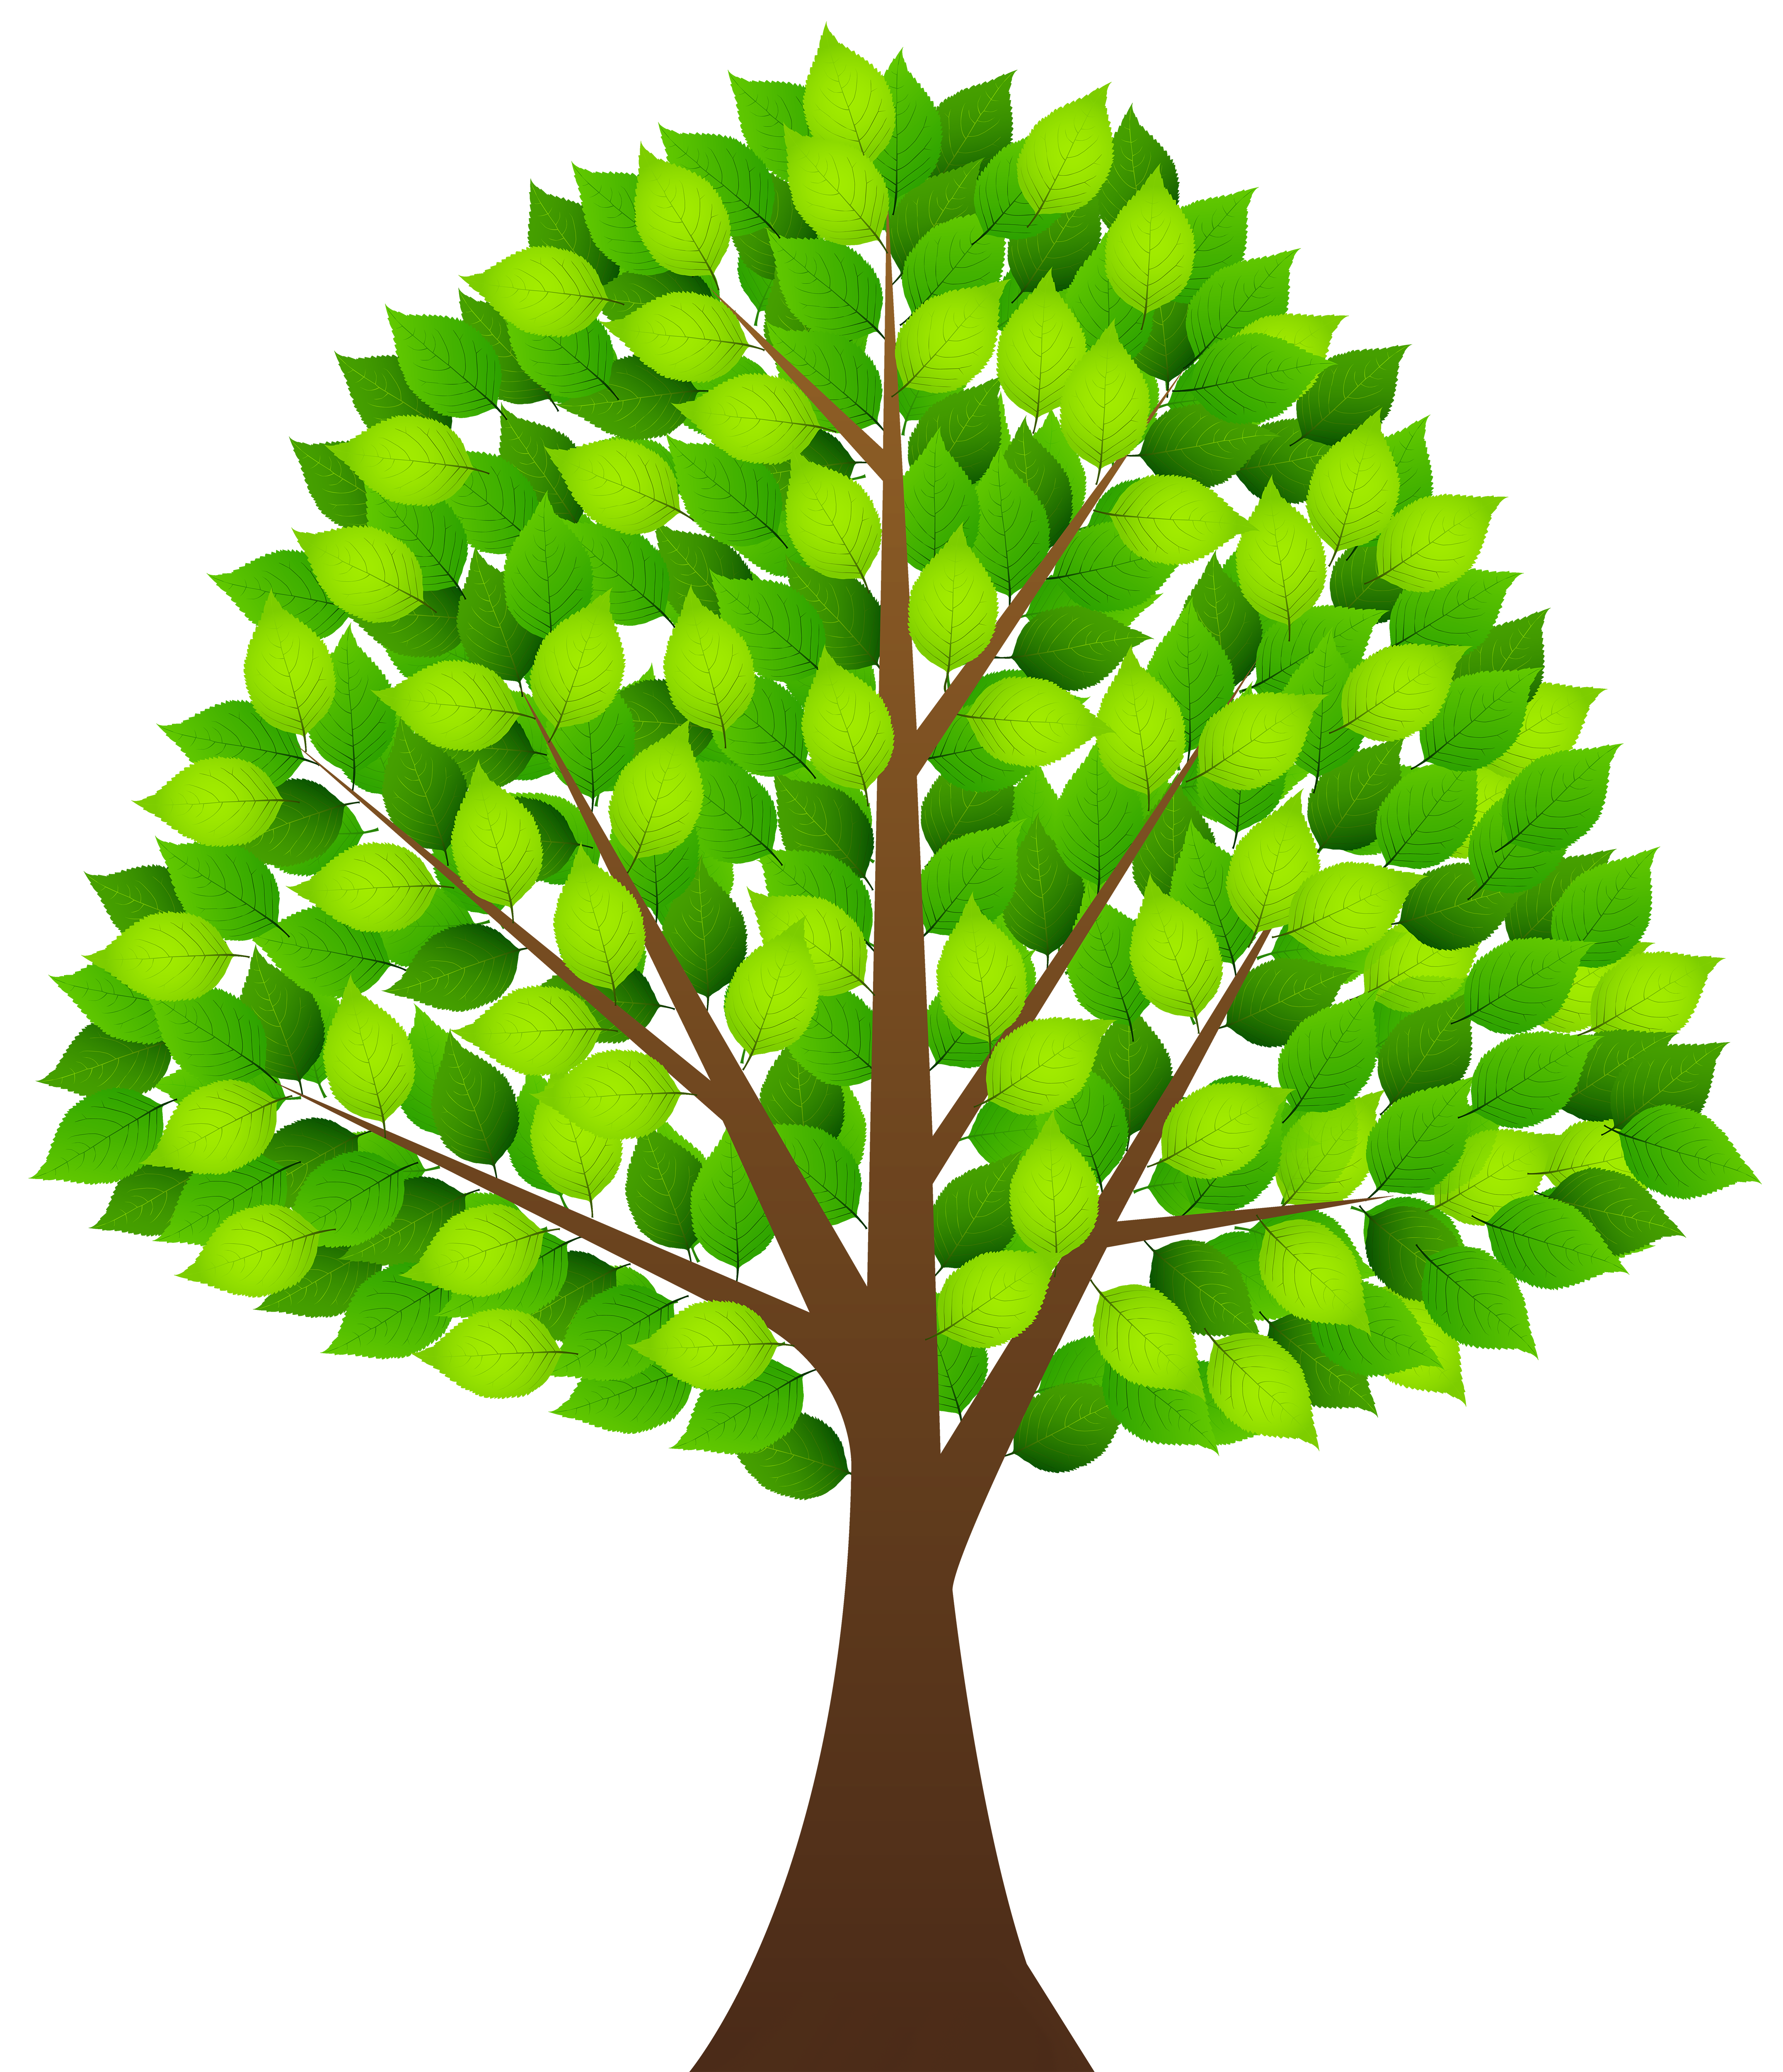 Free Transparent Tree Cliparts, Download Free Clip Art, Free